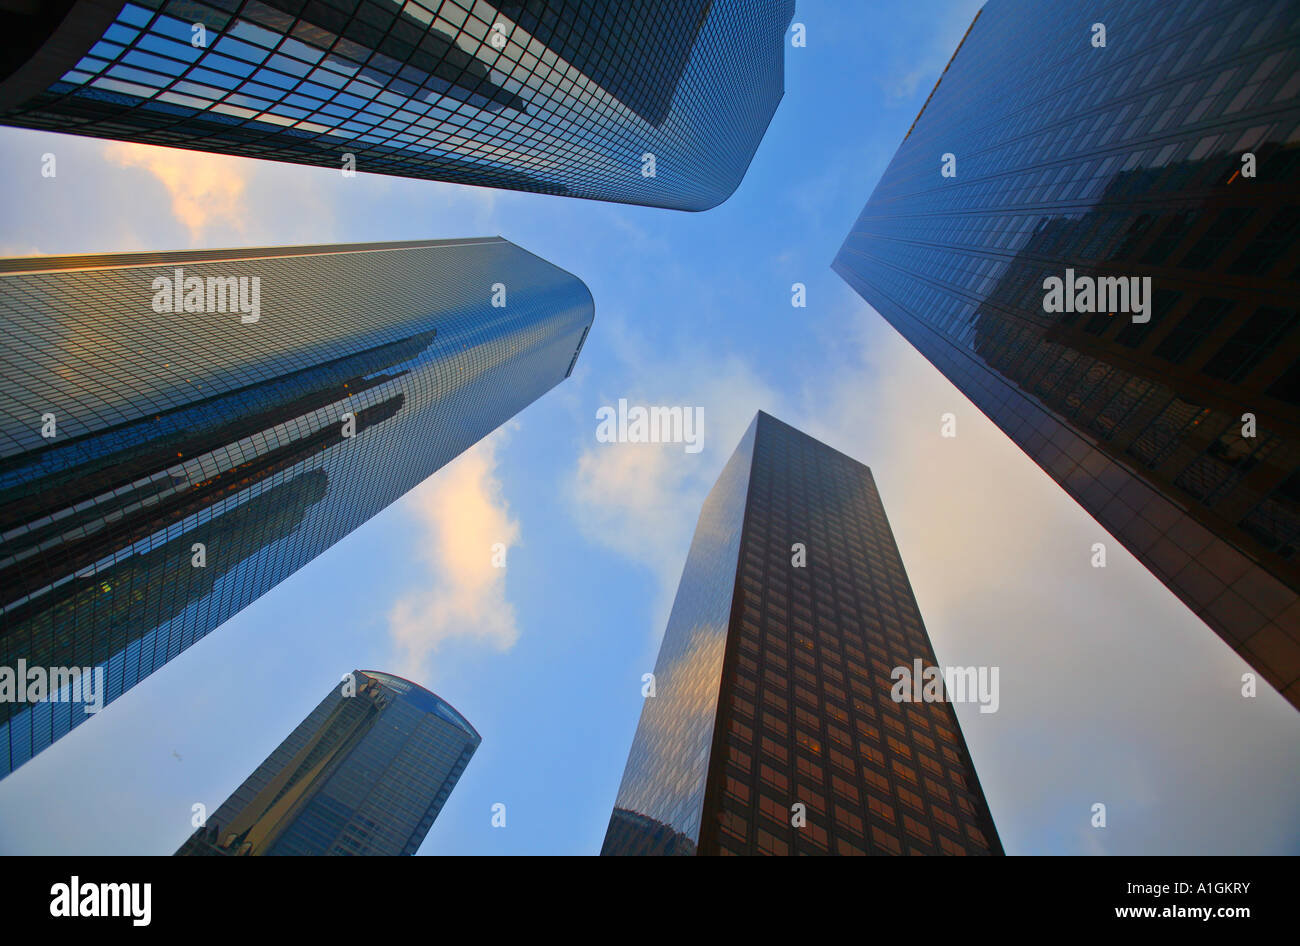 Buildings On Main Street Downtown Los Angeles Los Angeles County California United States - Stock Image